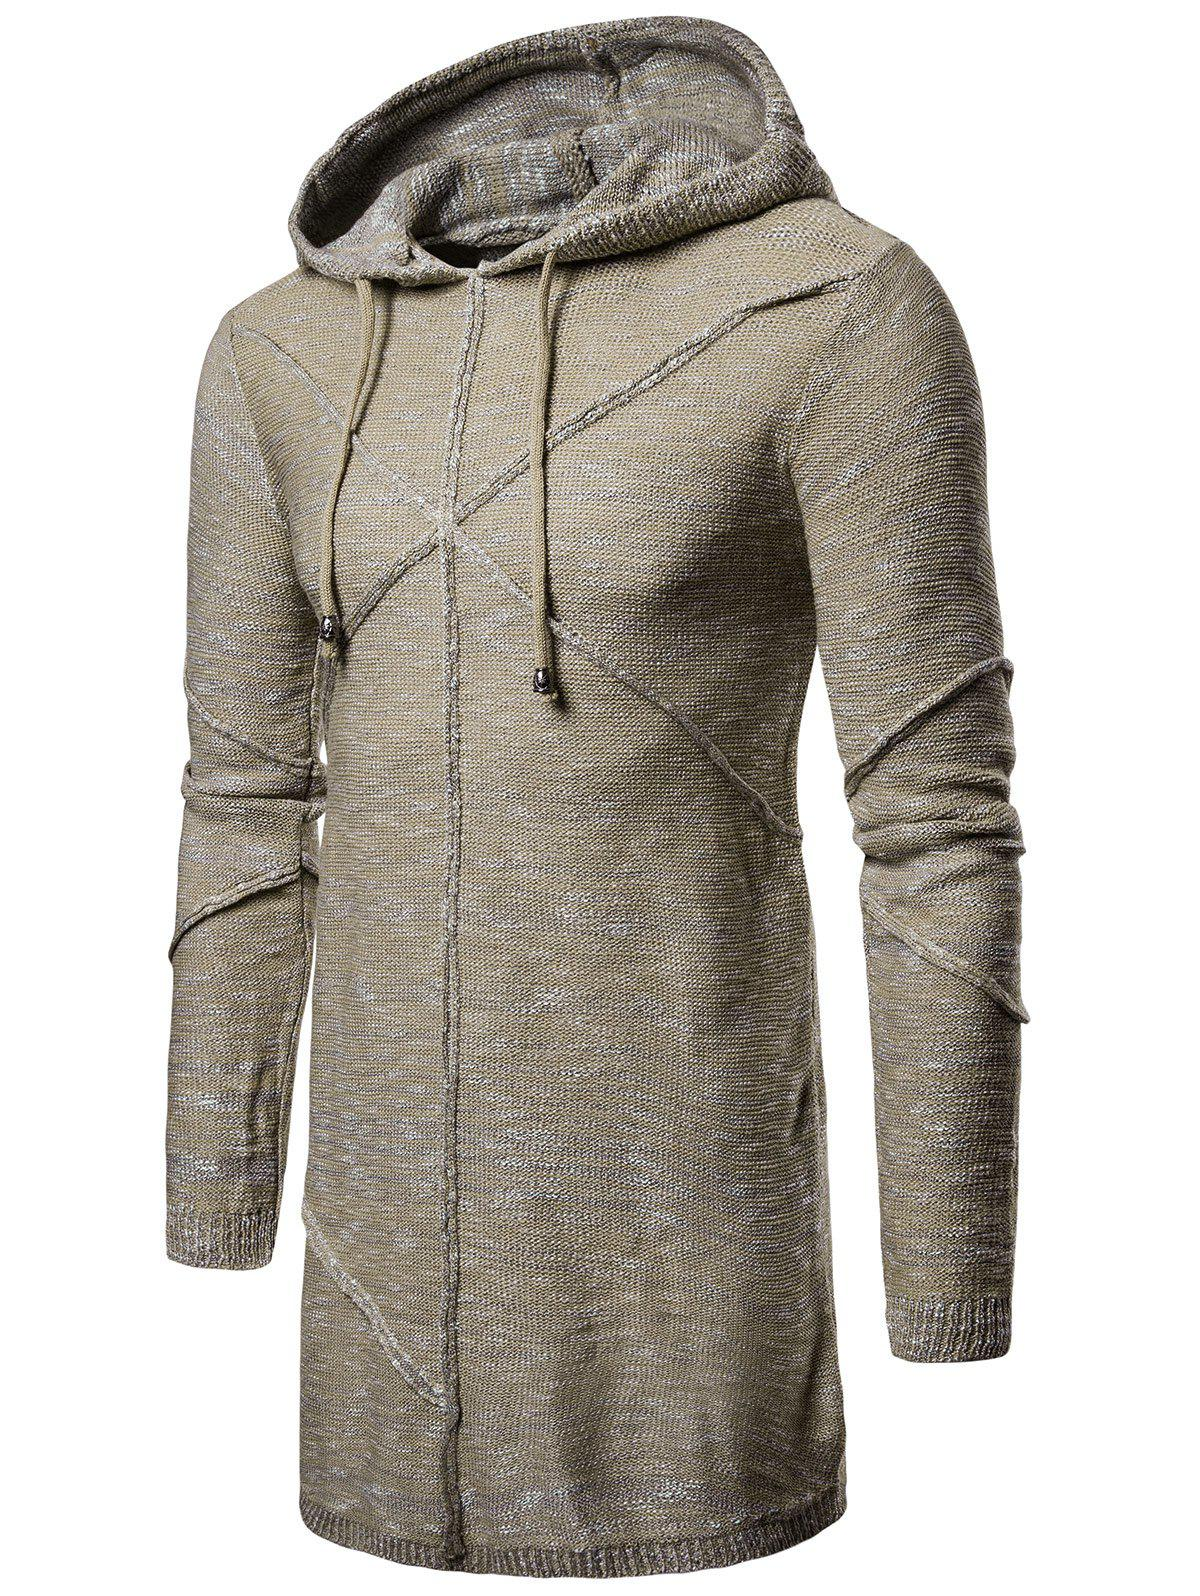 Chic Hooded Cross Longline Pullover Sweater